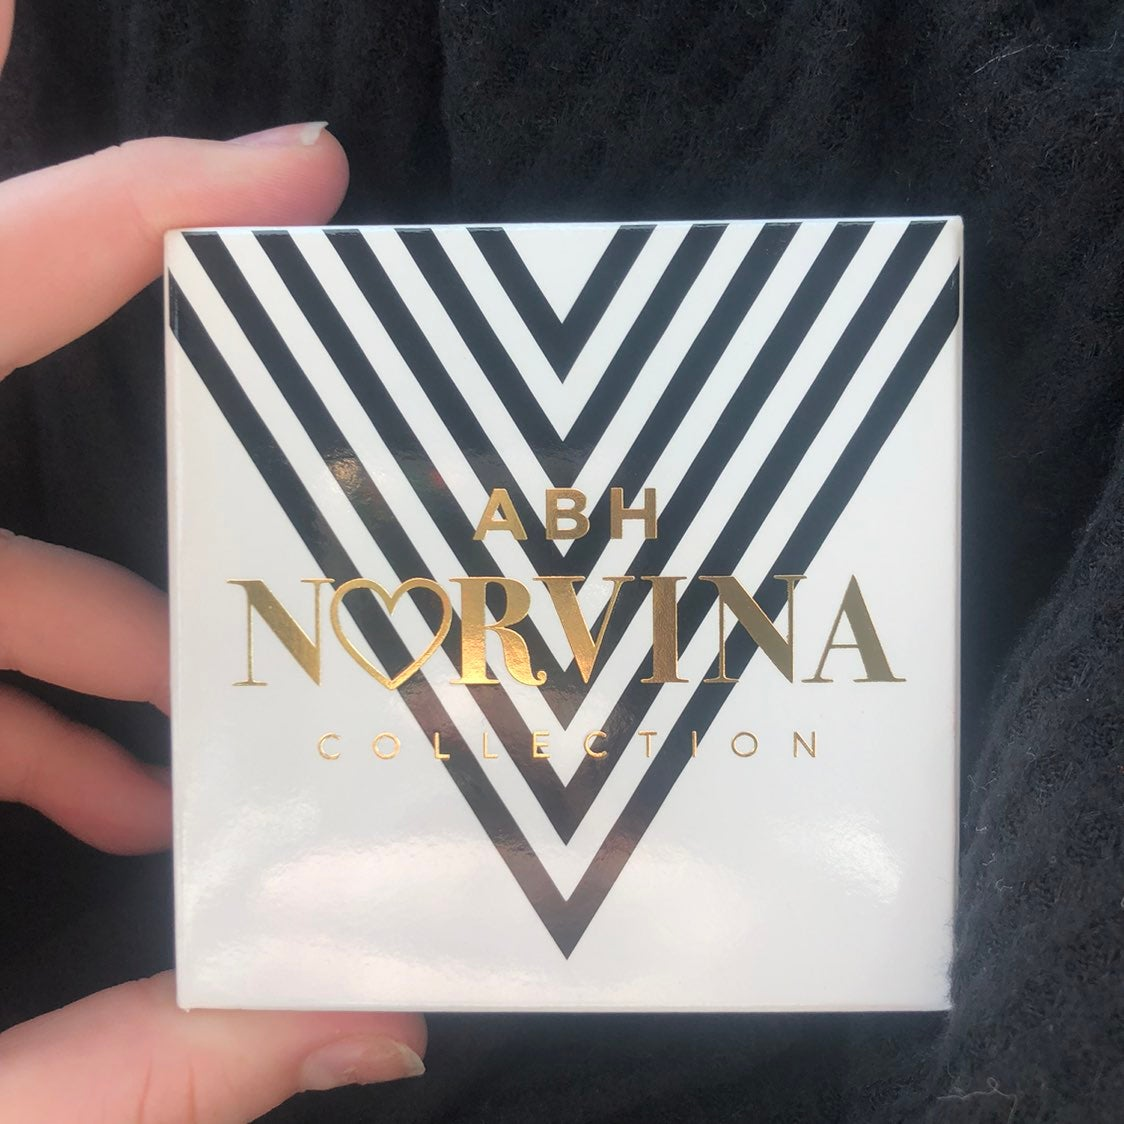 Anastasia Beverly Hills Norvina Mini